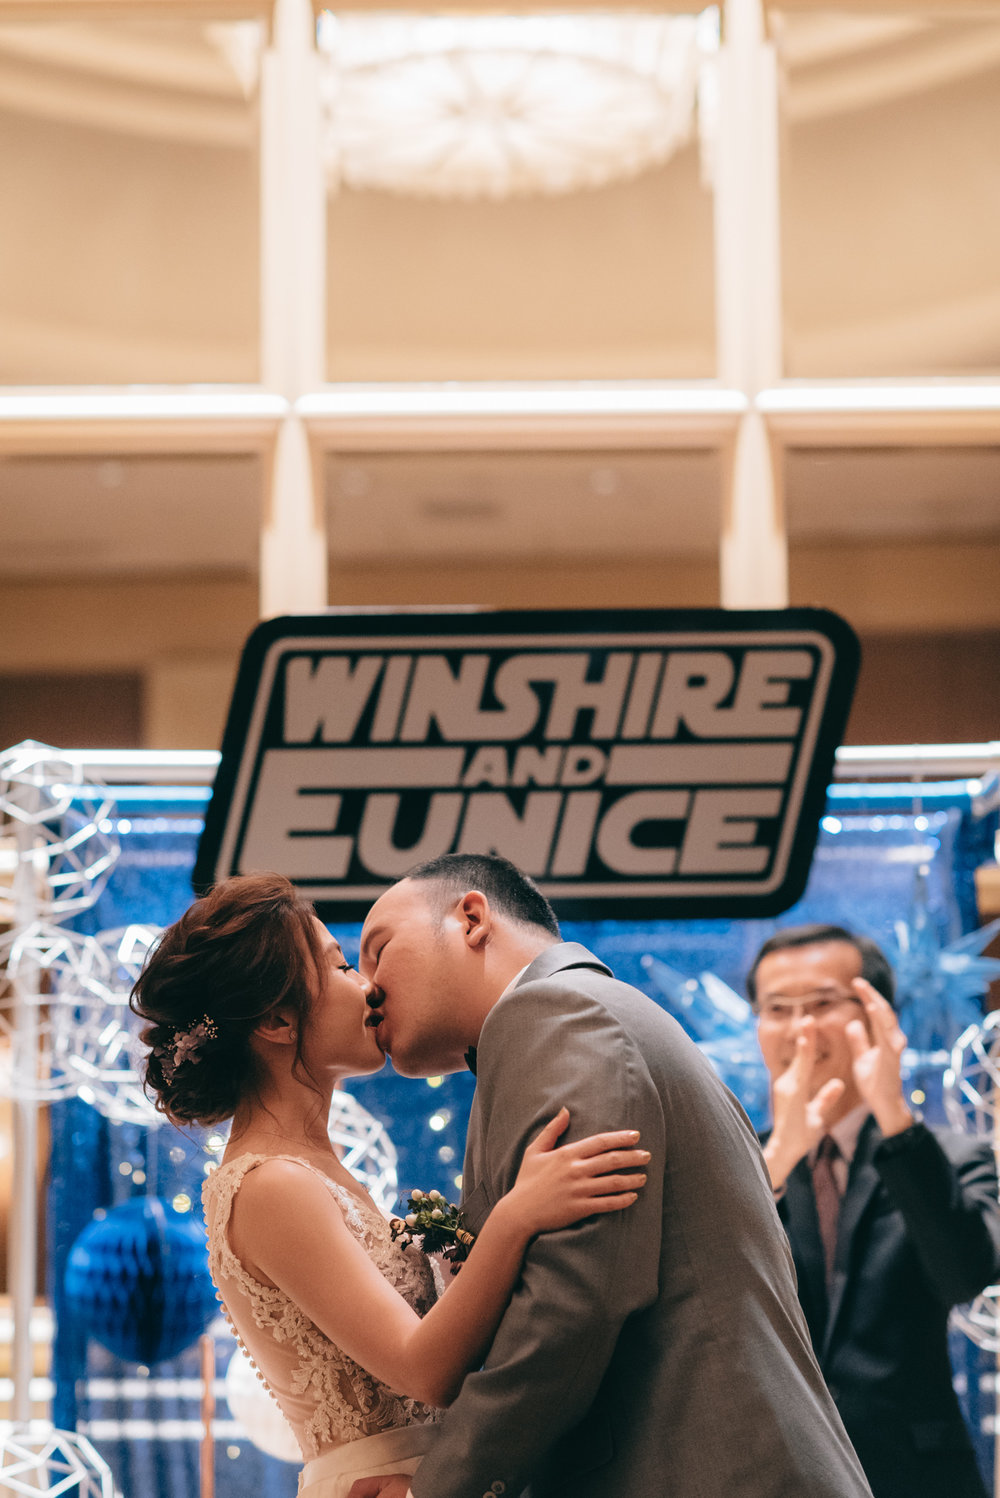 Eunice & Winshire Wedding Day Highlights (resized for sharing) - 149.jpg